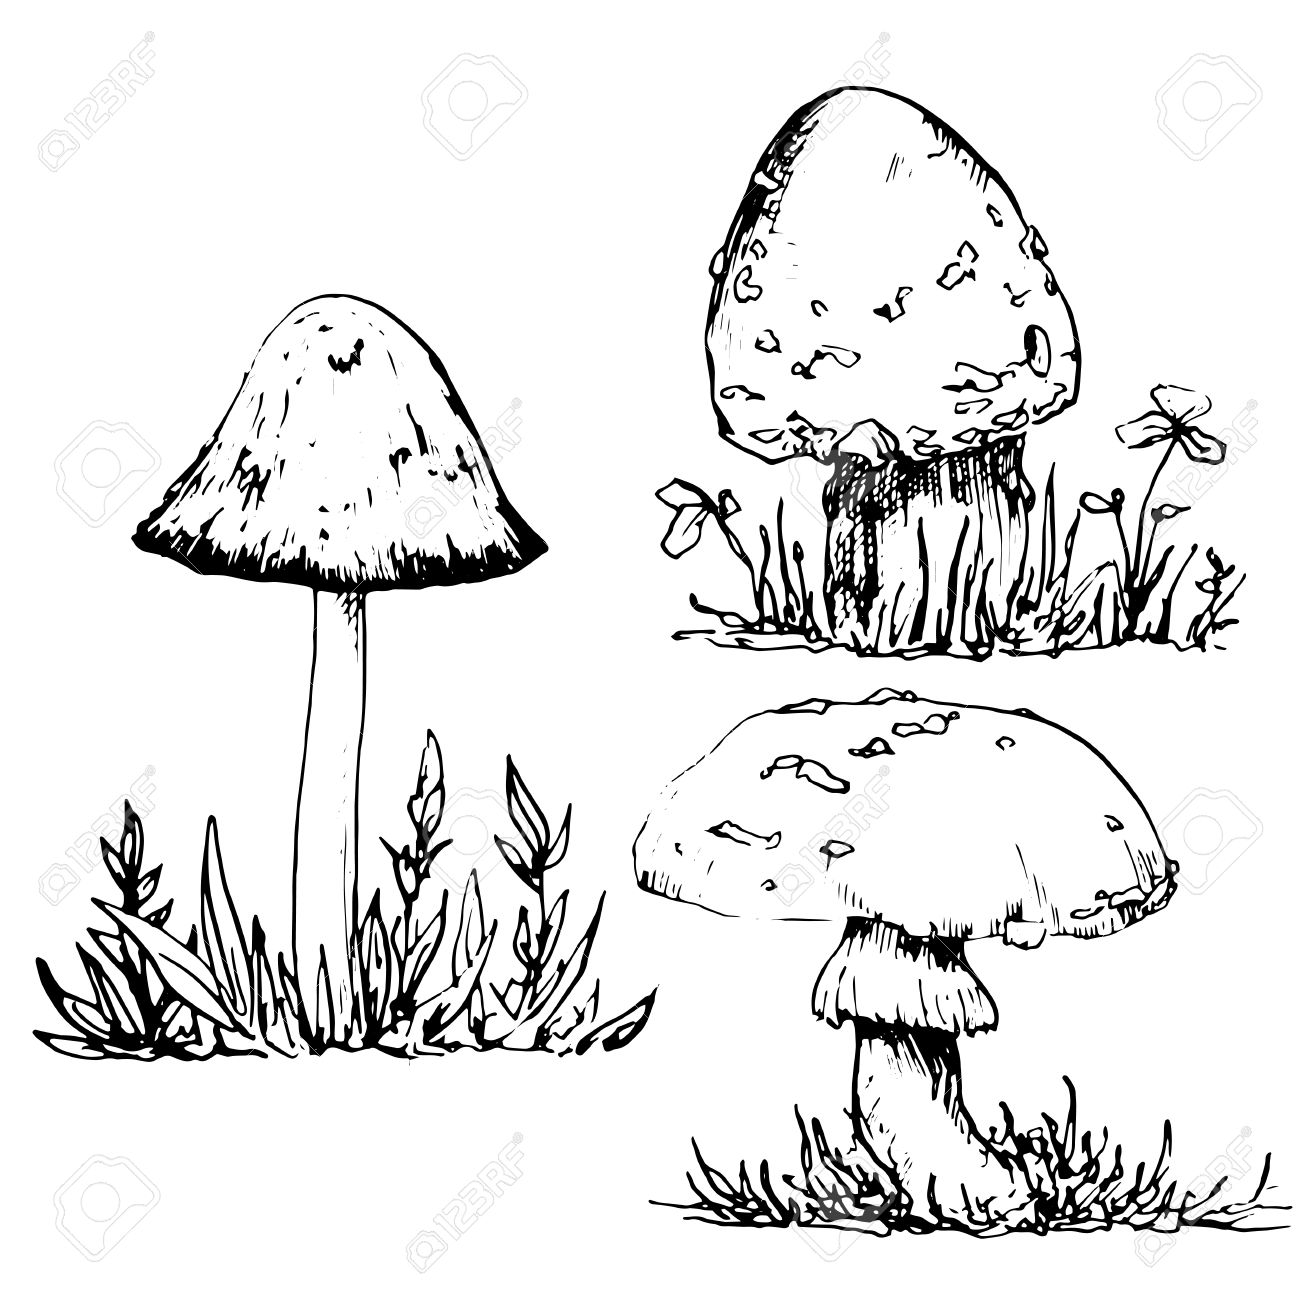 1300x1300 Poisonous Mushrooms At Grass, Ink Pen Drawing Set, Vintage Style